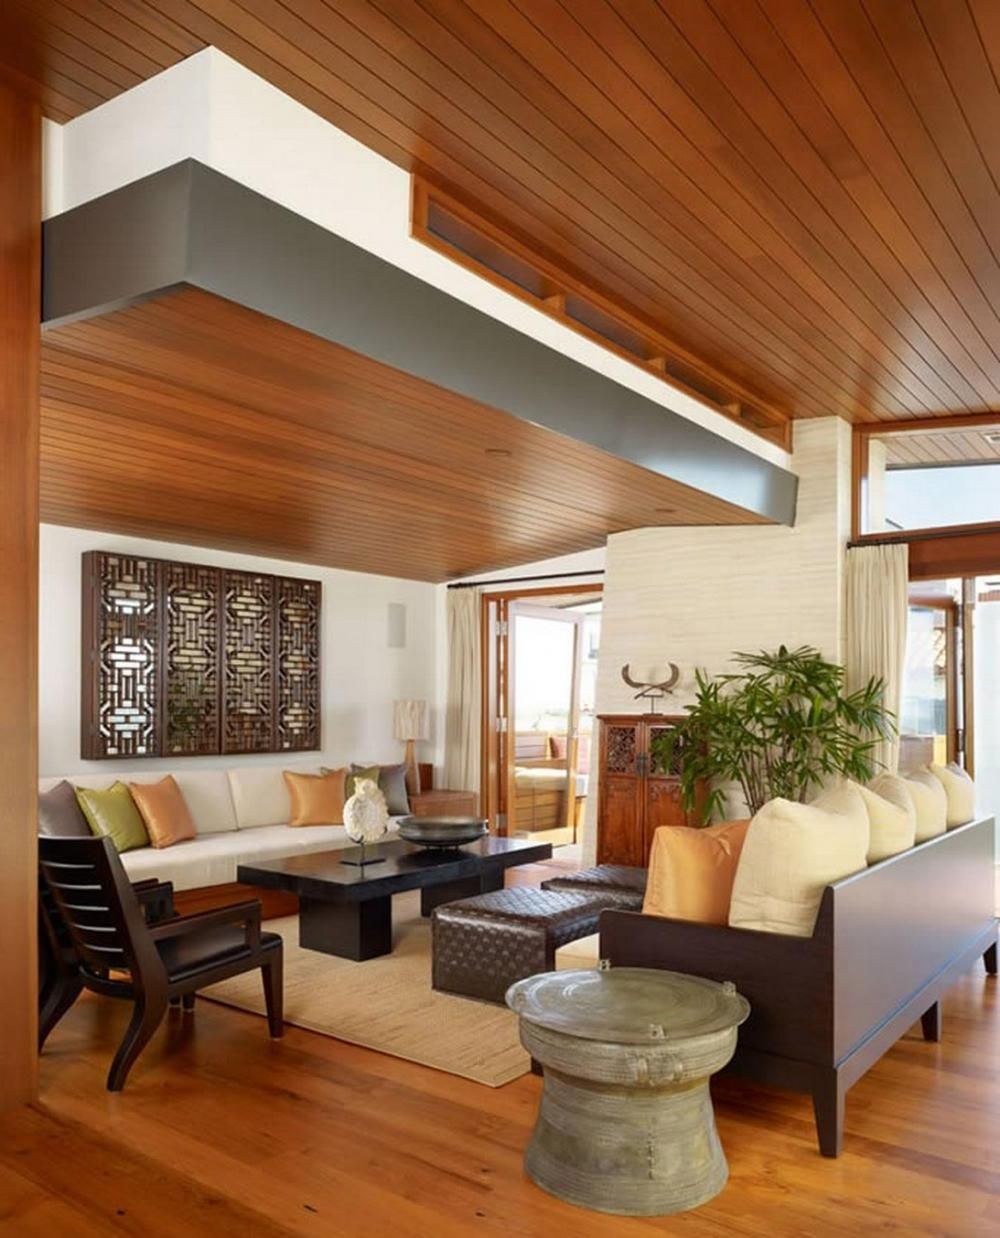 Wooden Ceiling Design Ideas Modern Ceiling Design Ideas Picture Endearing Living Room Wood Ceiling Design Design Ideas